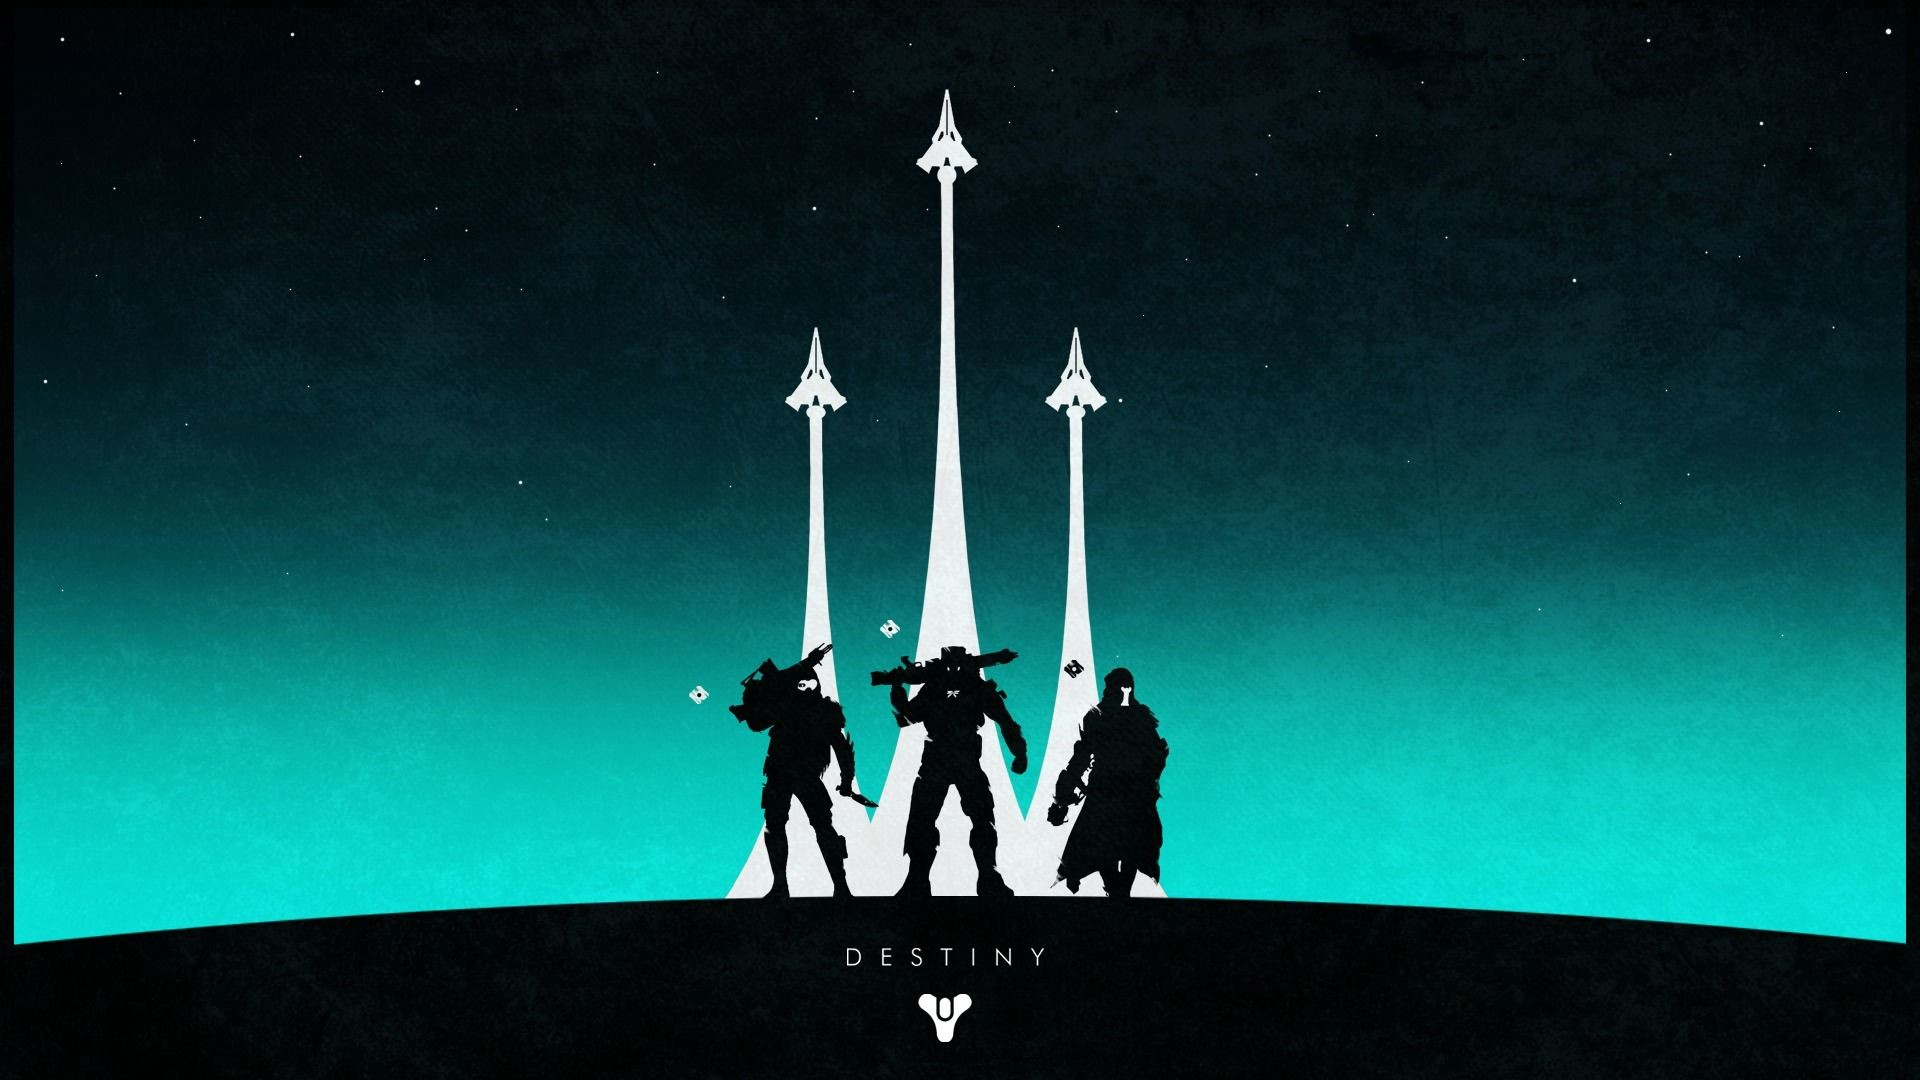 Res: 1920x1080, Destiny HD Wallpapers Backgrounds Wallpaper 1499×1080 Destiny Wallpaper Hd  (59 Wallpapers) |